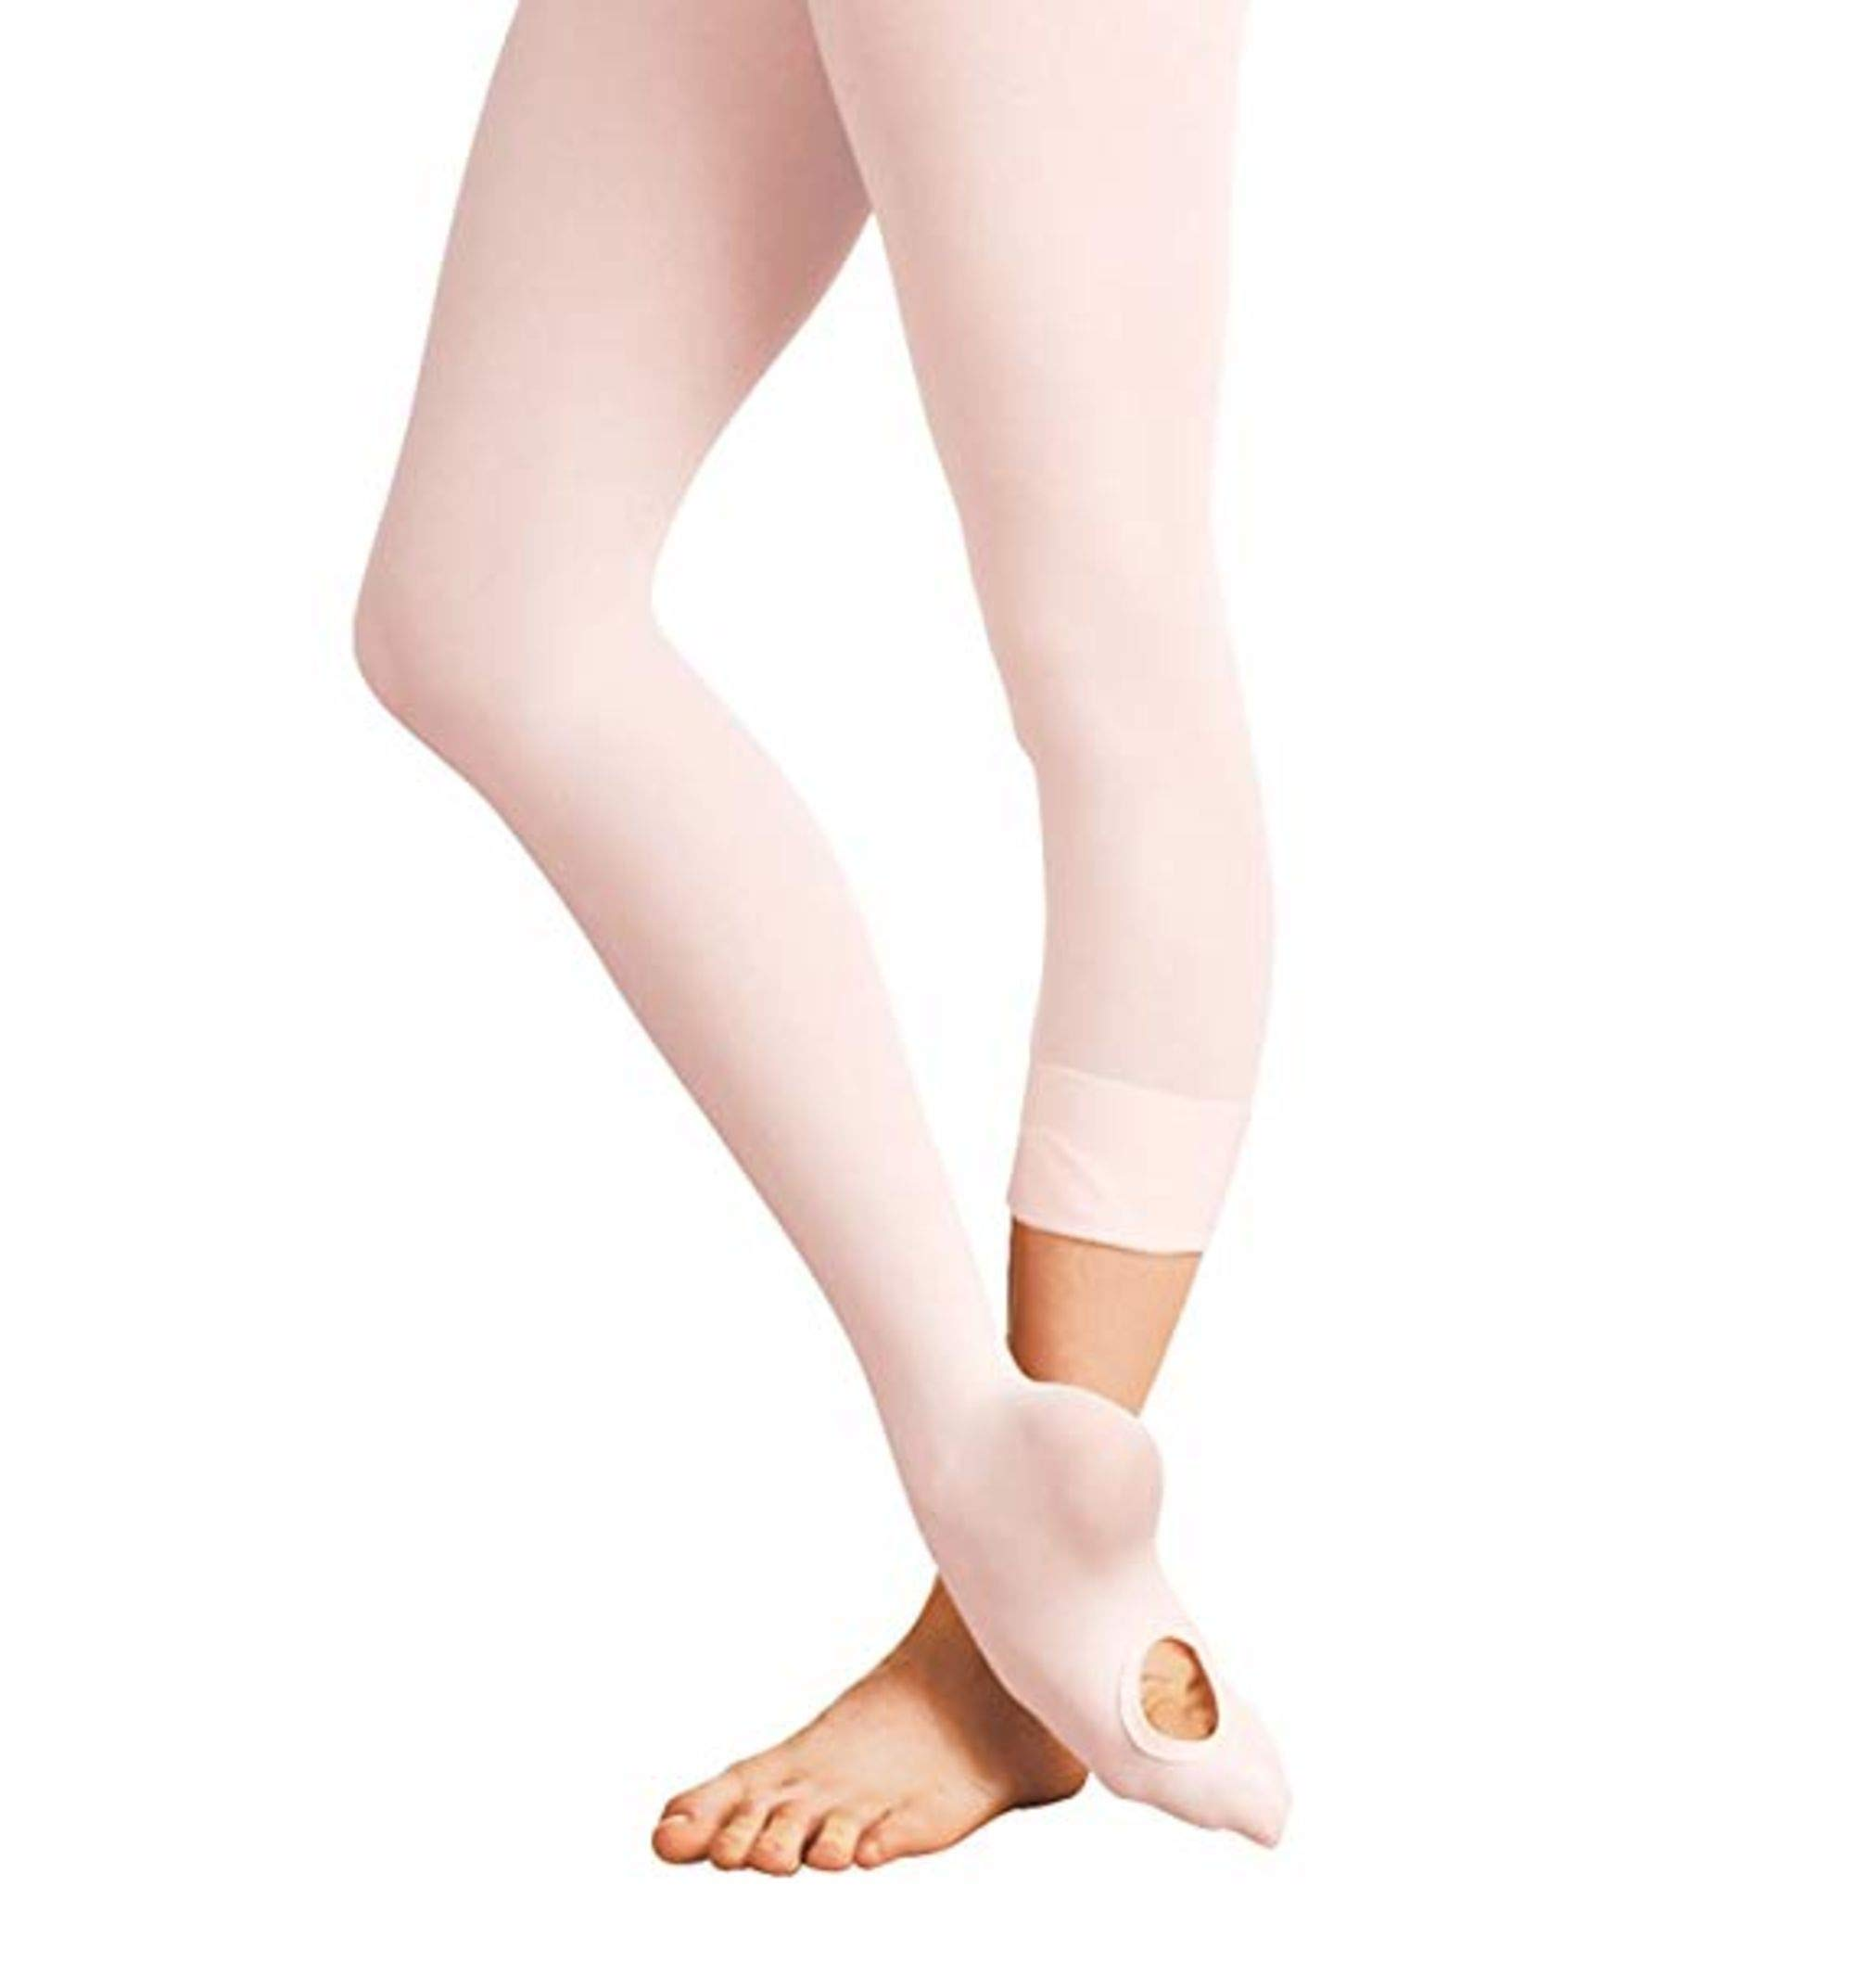 Body Wrappers A31 TotalSTRETCH Convertible Dance Tights (Tall, Light Pink) 3-Pk by Body Wrappers